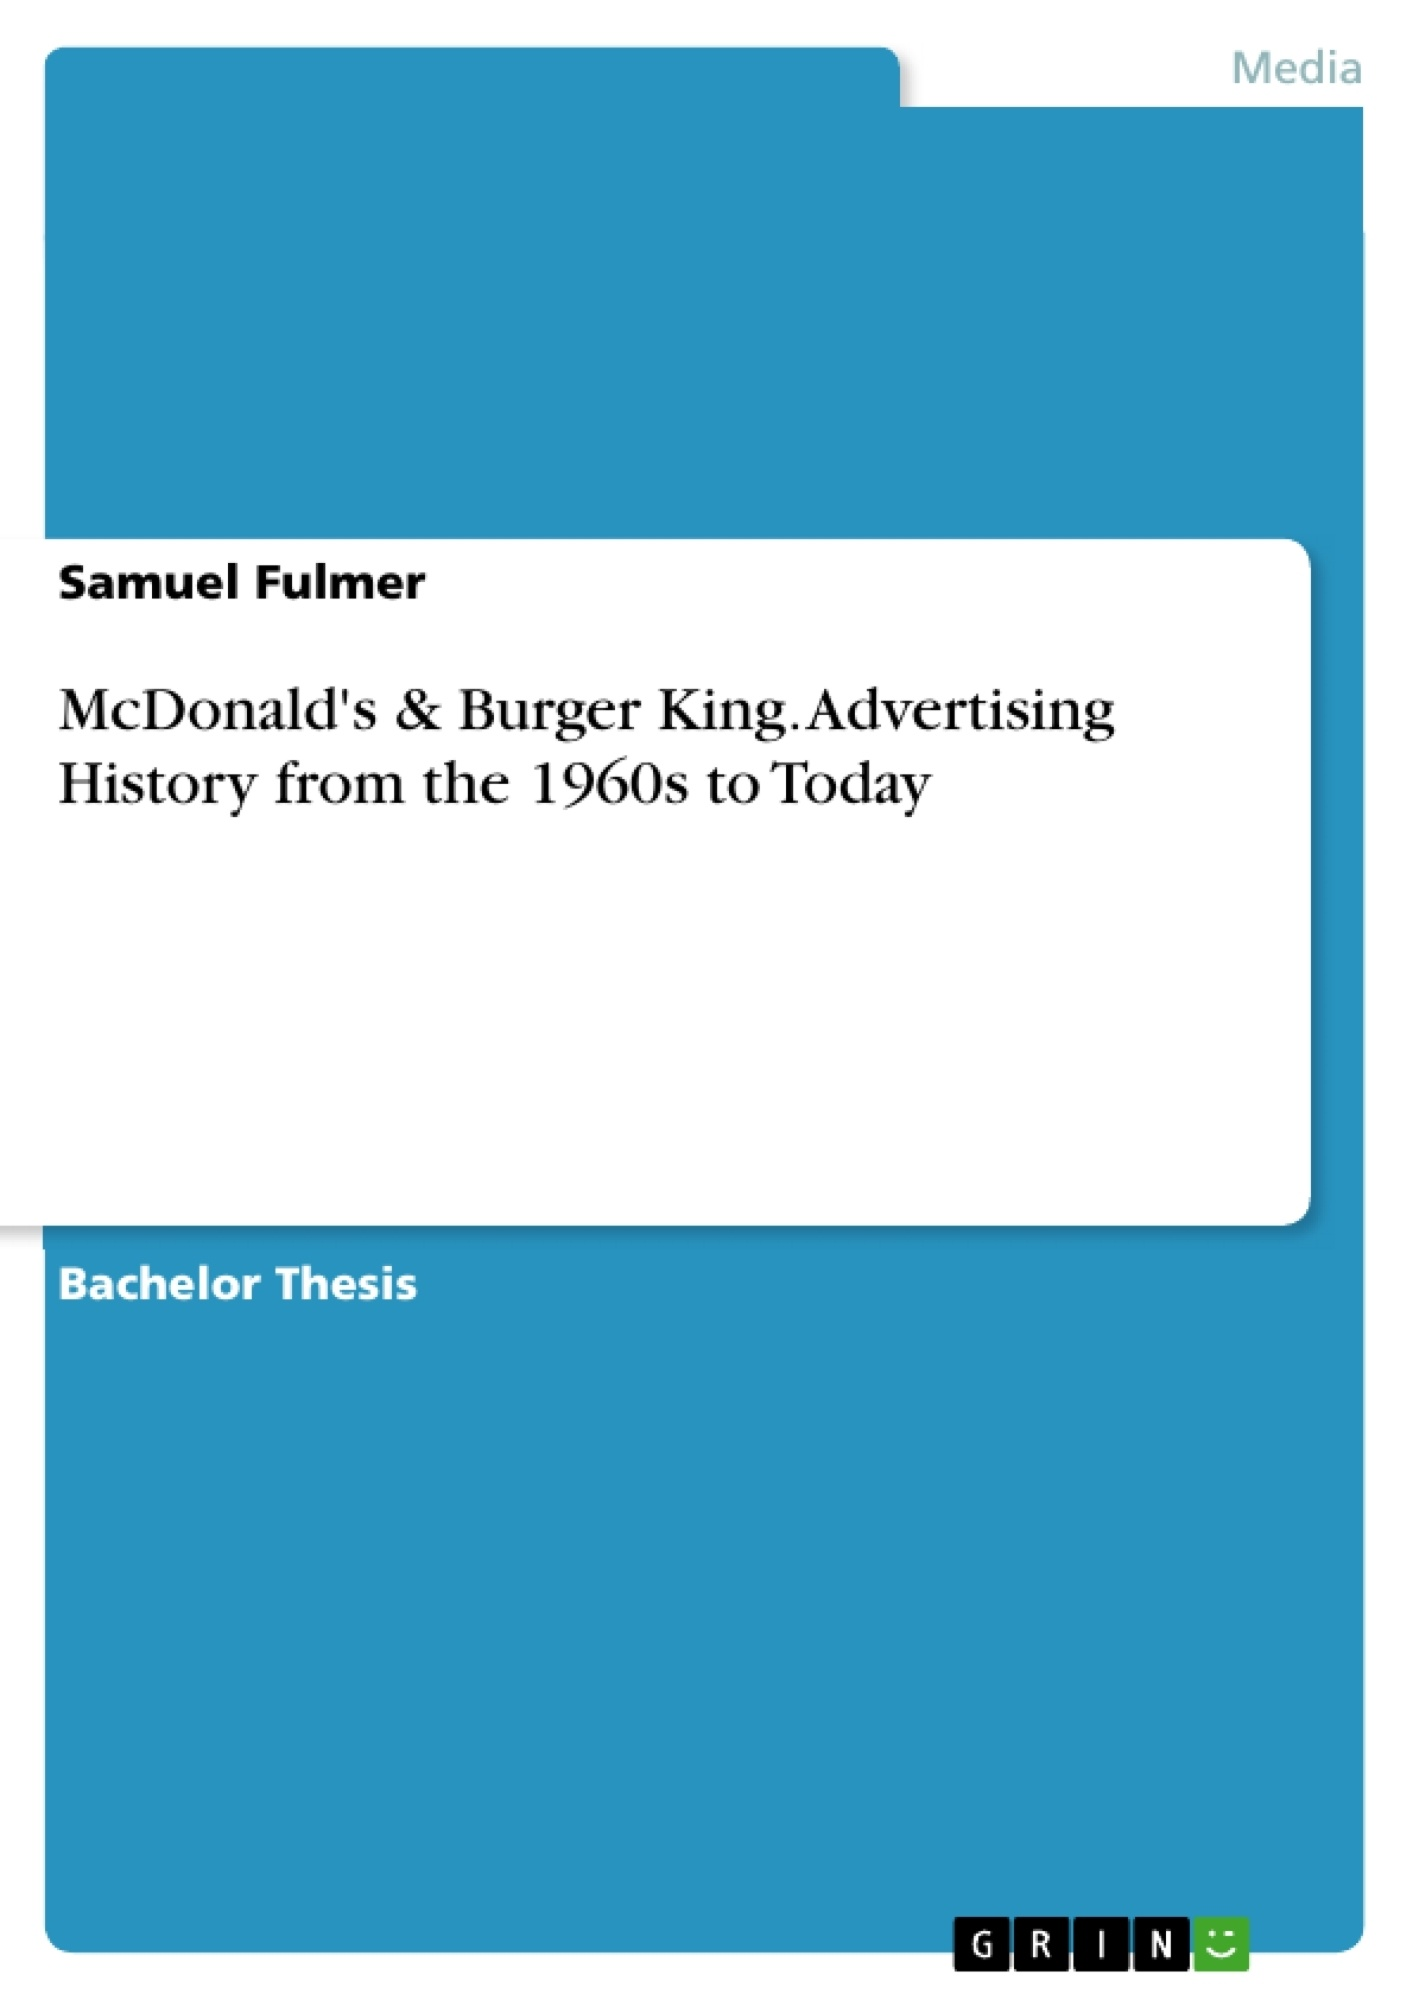 Title: McDonald's & Burger King. Advertising History from the 1960s to Today